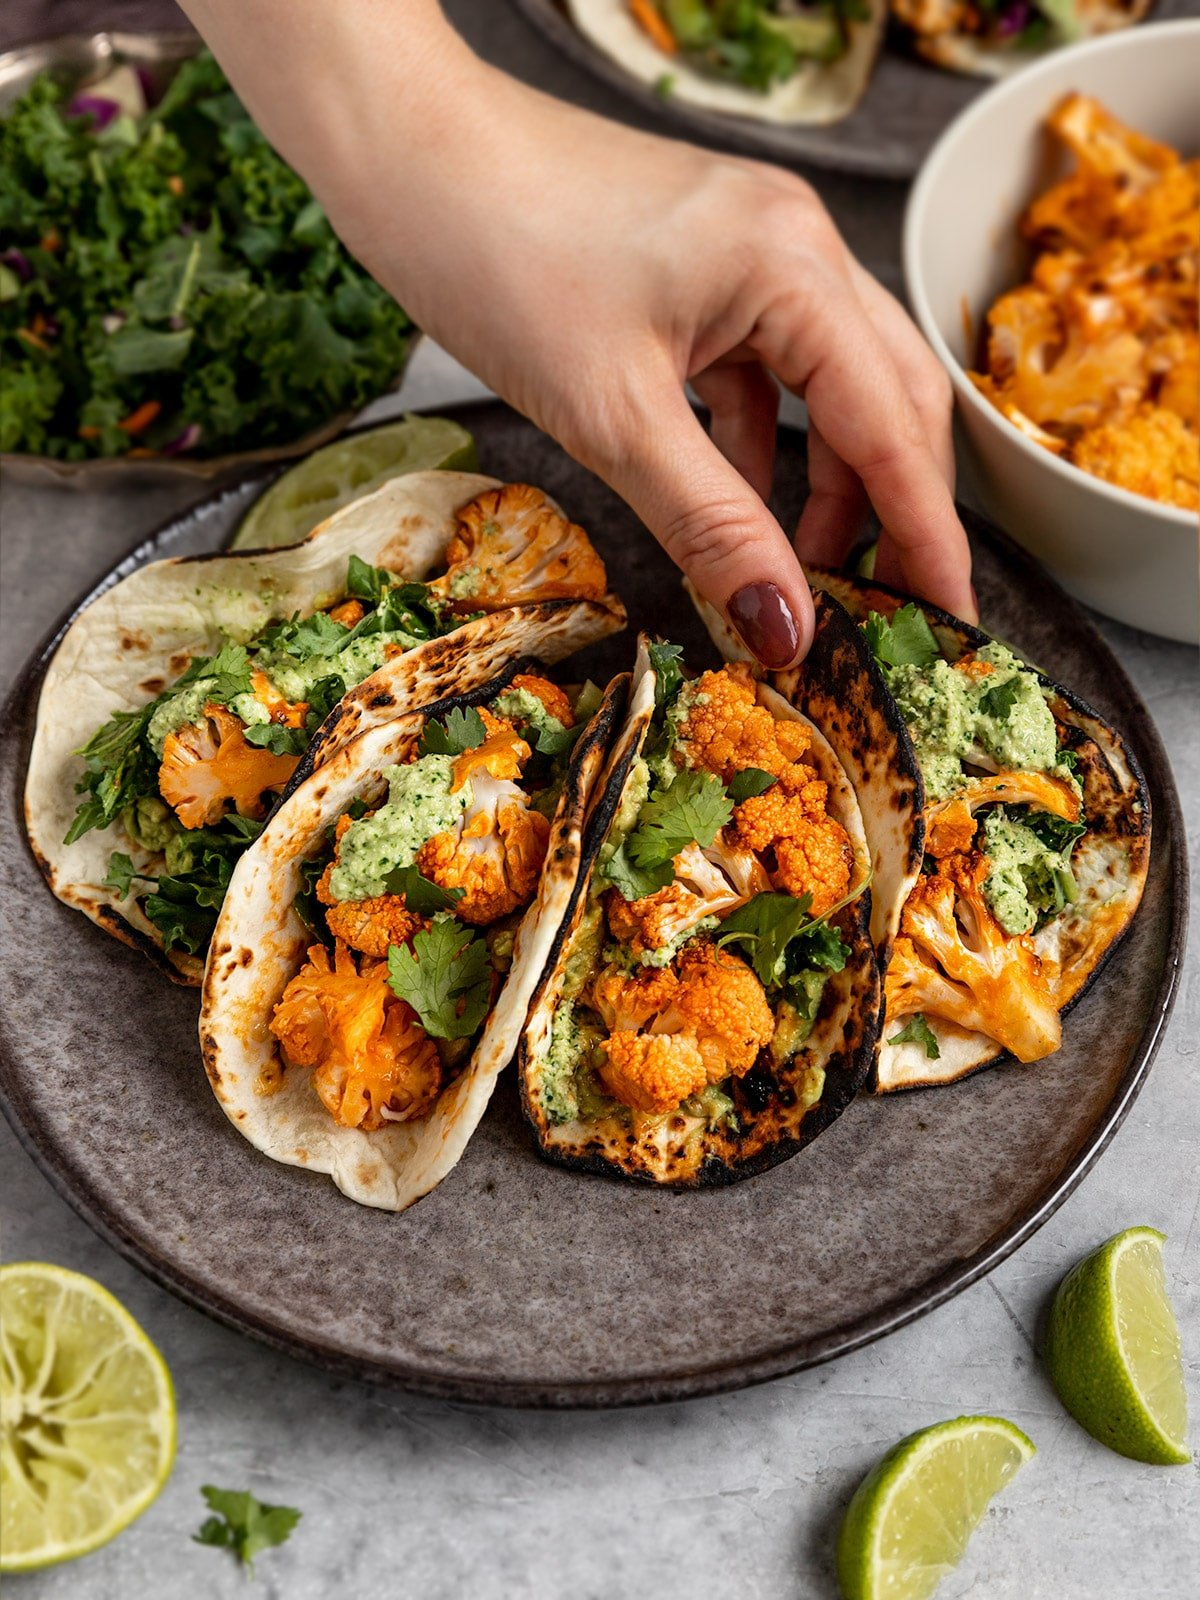 hand grabbing taco from a plate of buffalo cauliflower tacos